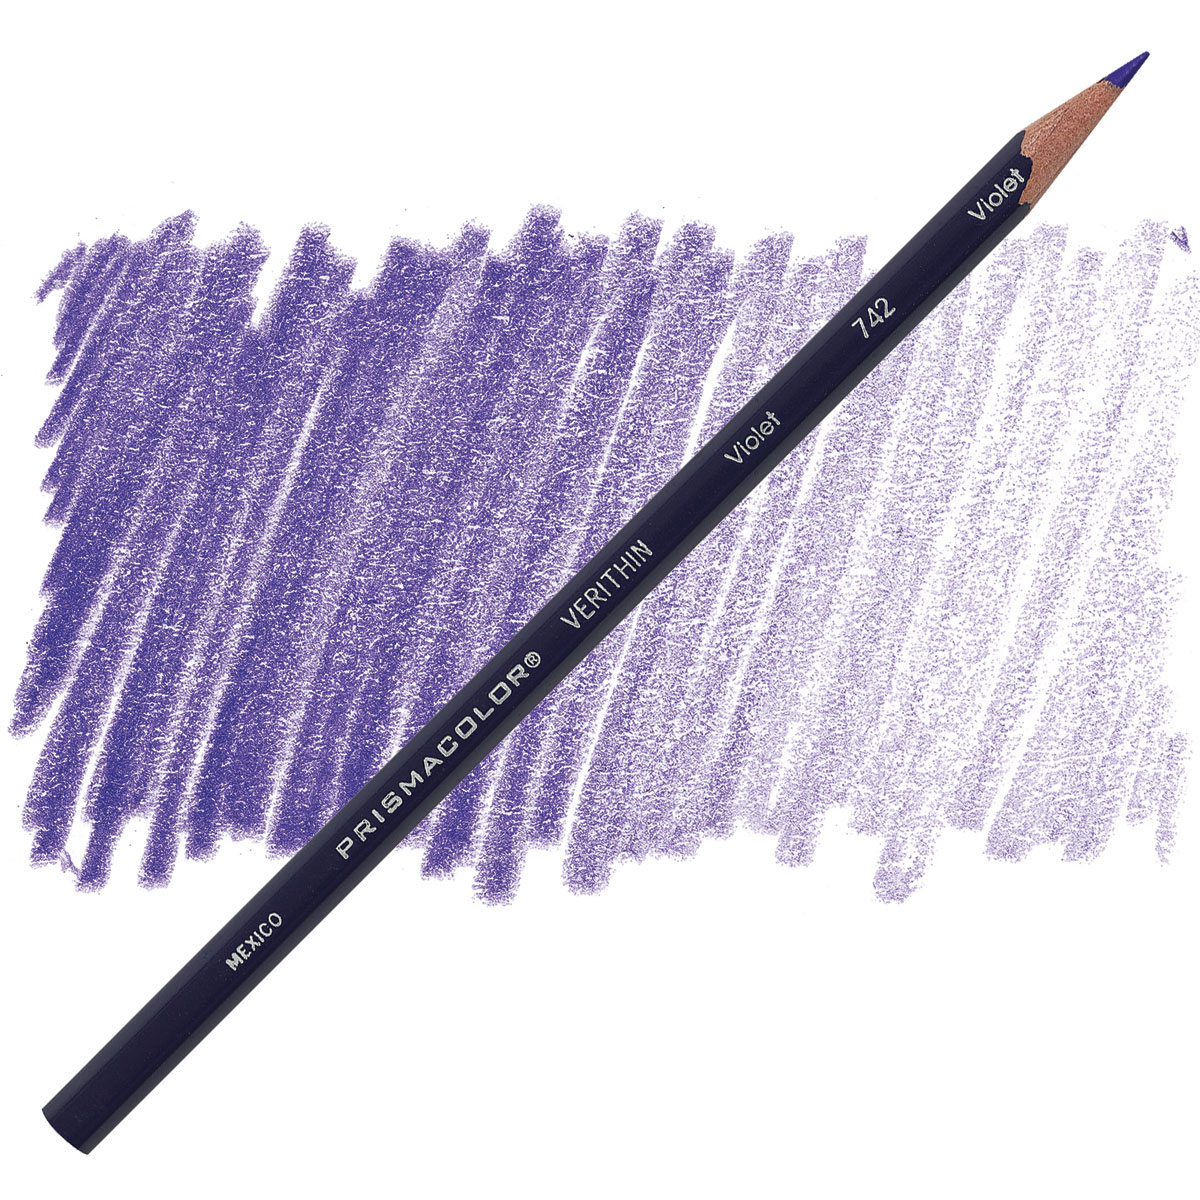 20509 6501 prismacolor verithin pencils blick art materials color swatches created using heavy to light application and were applied on 100 lb 163 gsm drawing paper material nvjuhfo Choice Image